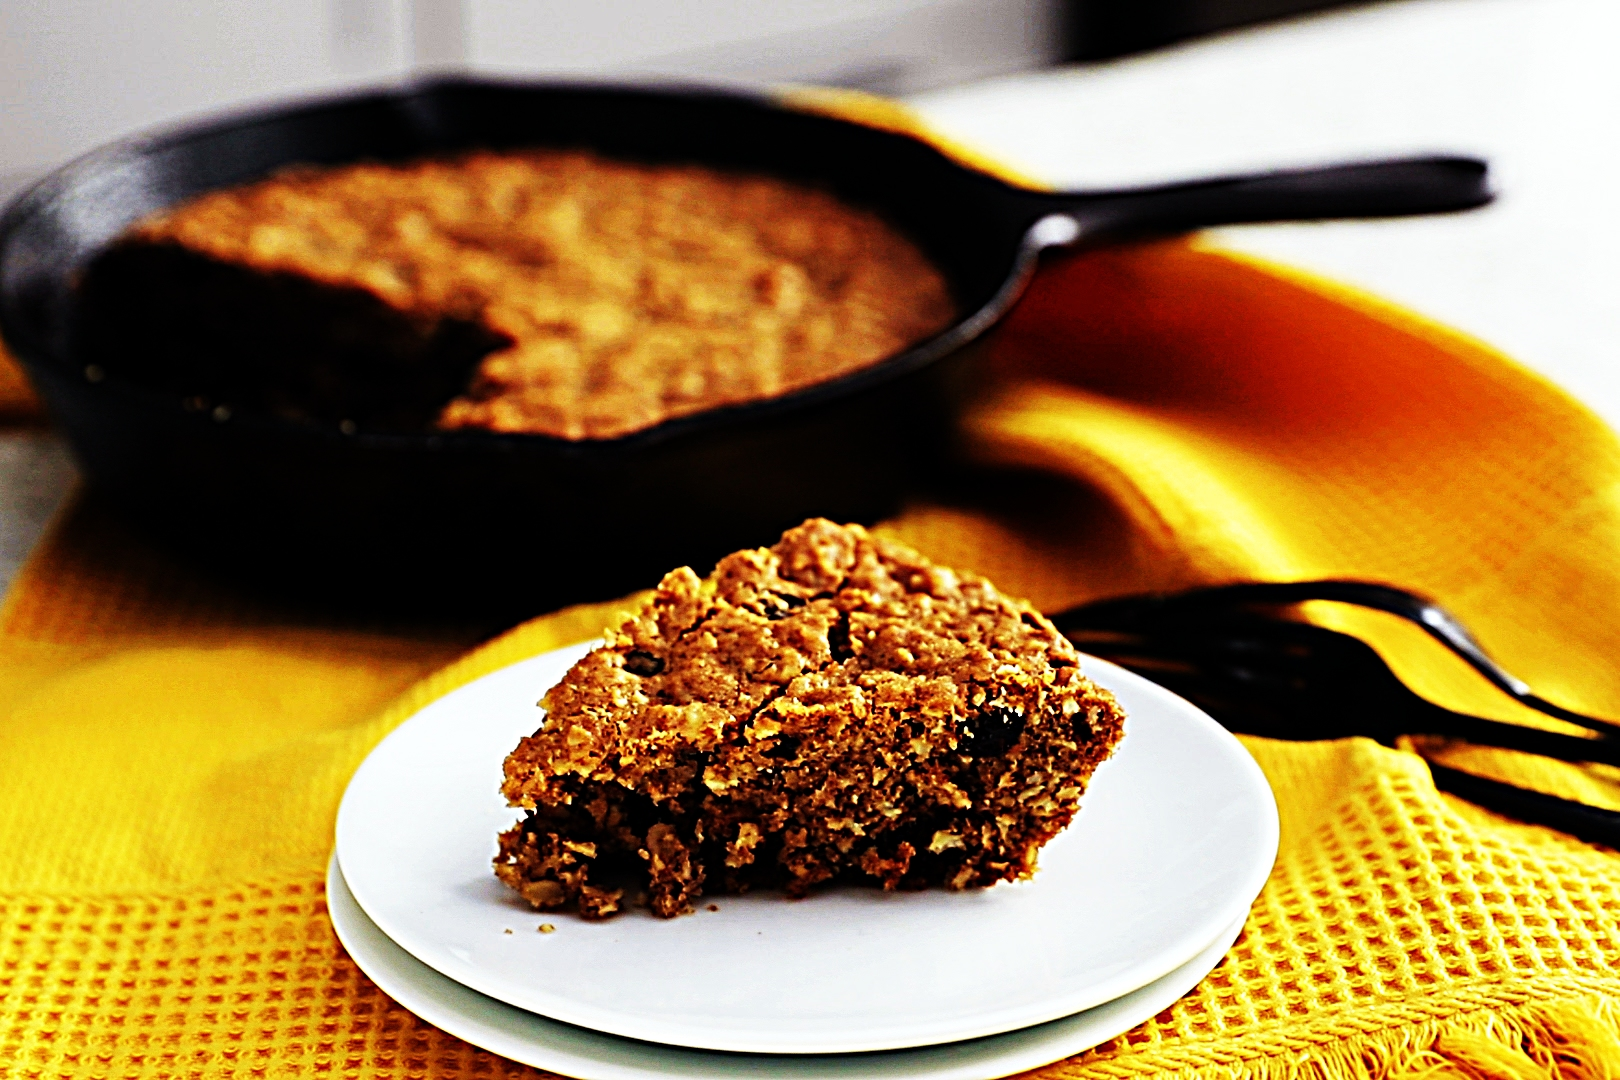 Stupid-Easy Recipe for Oatmeal Raisin Skillet Cookie (#1 Top-Rated)